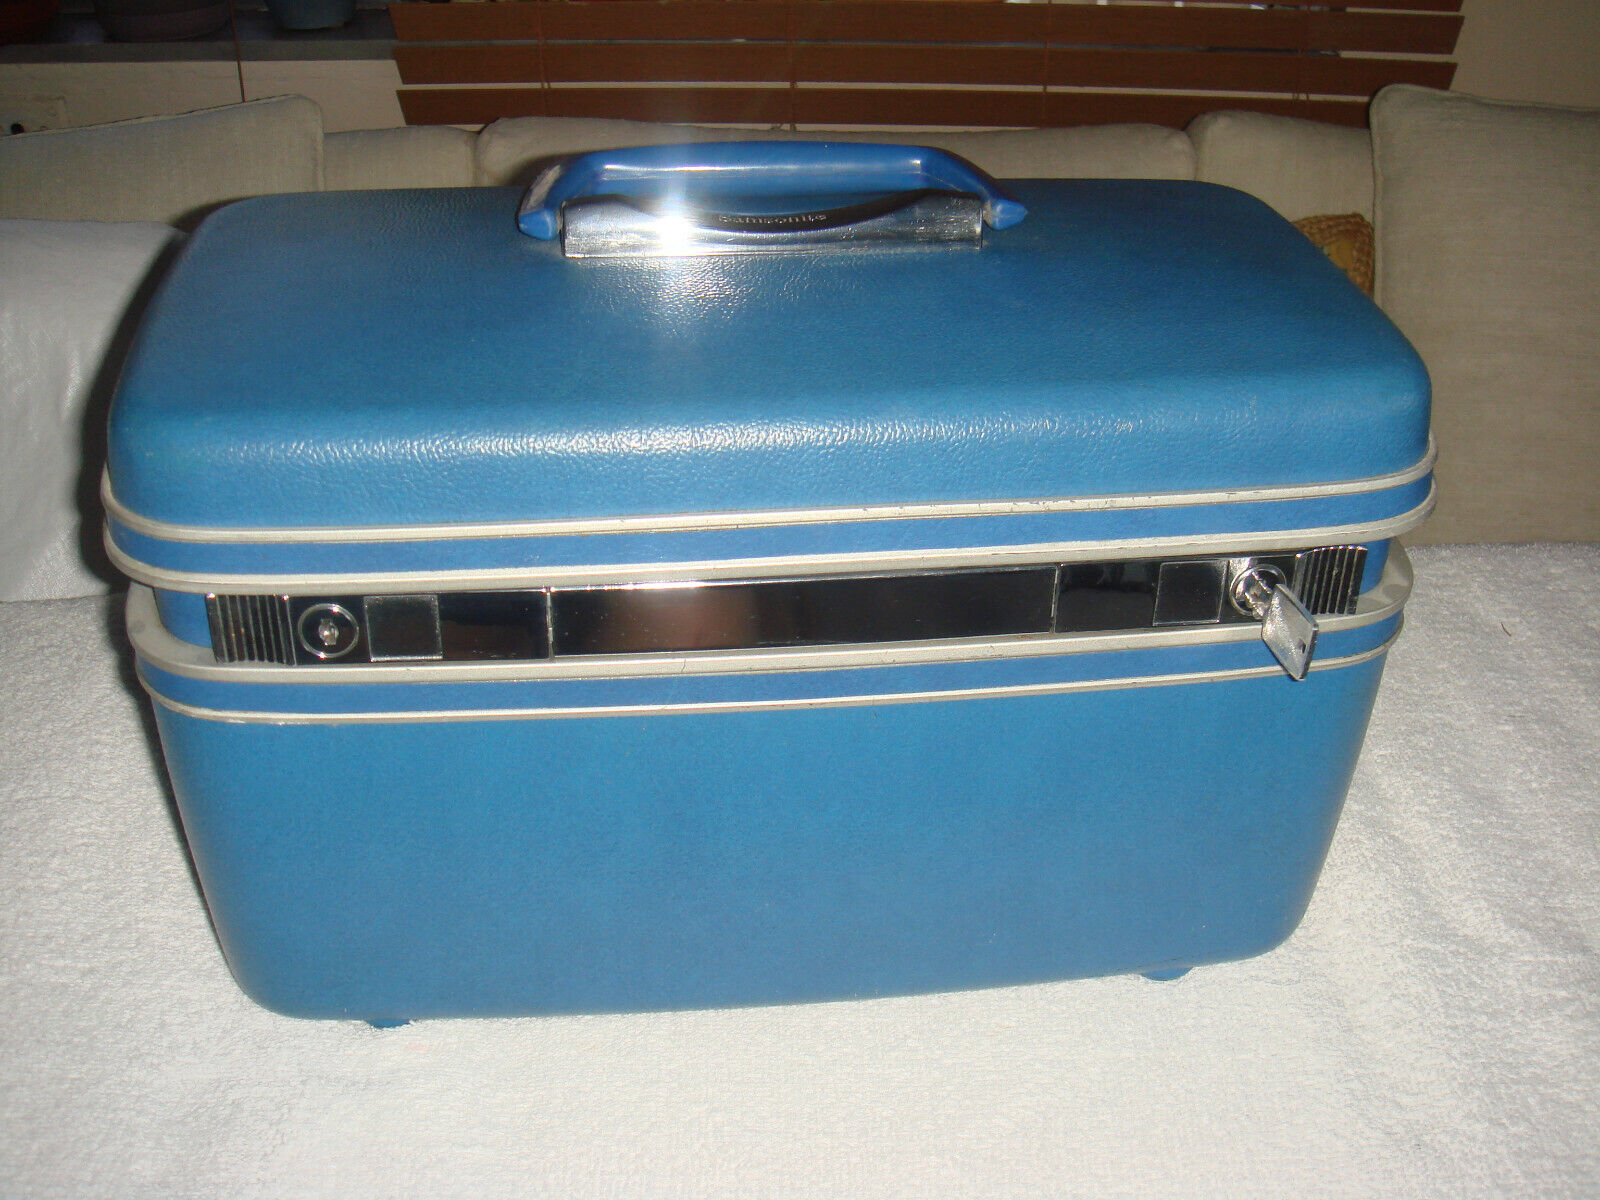 Samsonite Silhouette Vintage Cosmetic Train Case Blue With Tray And KEY - $19.99